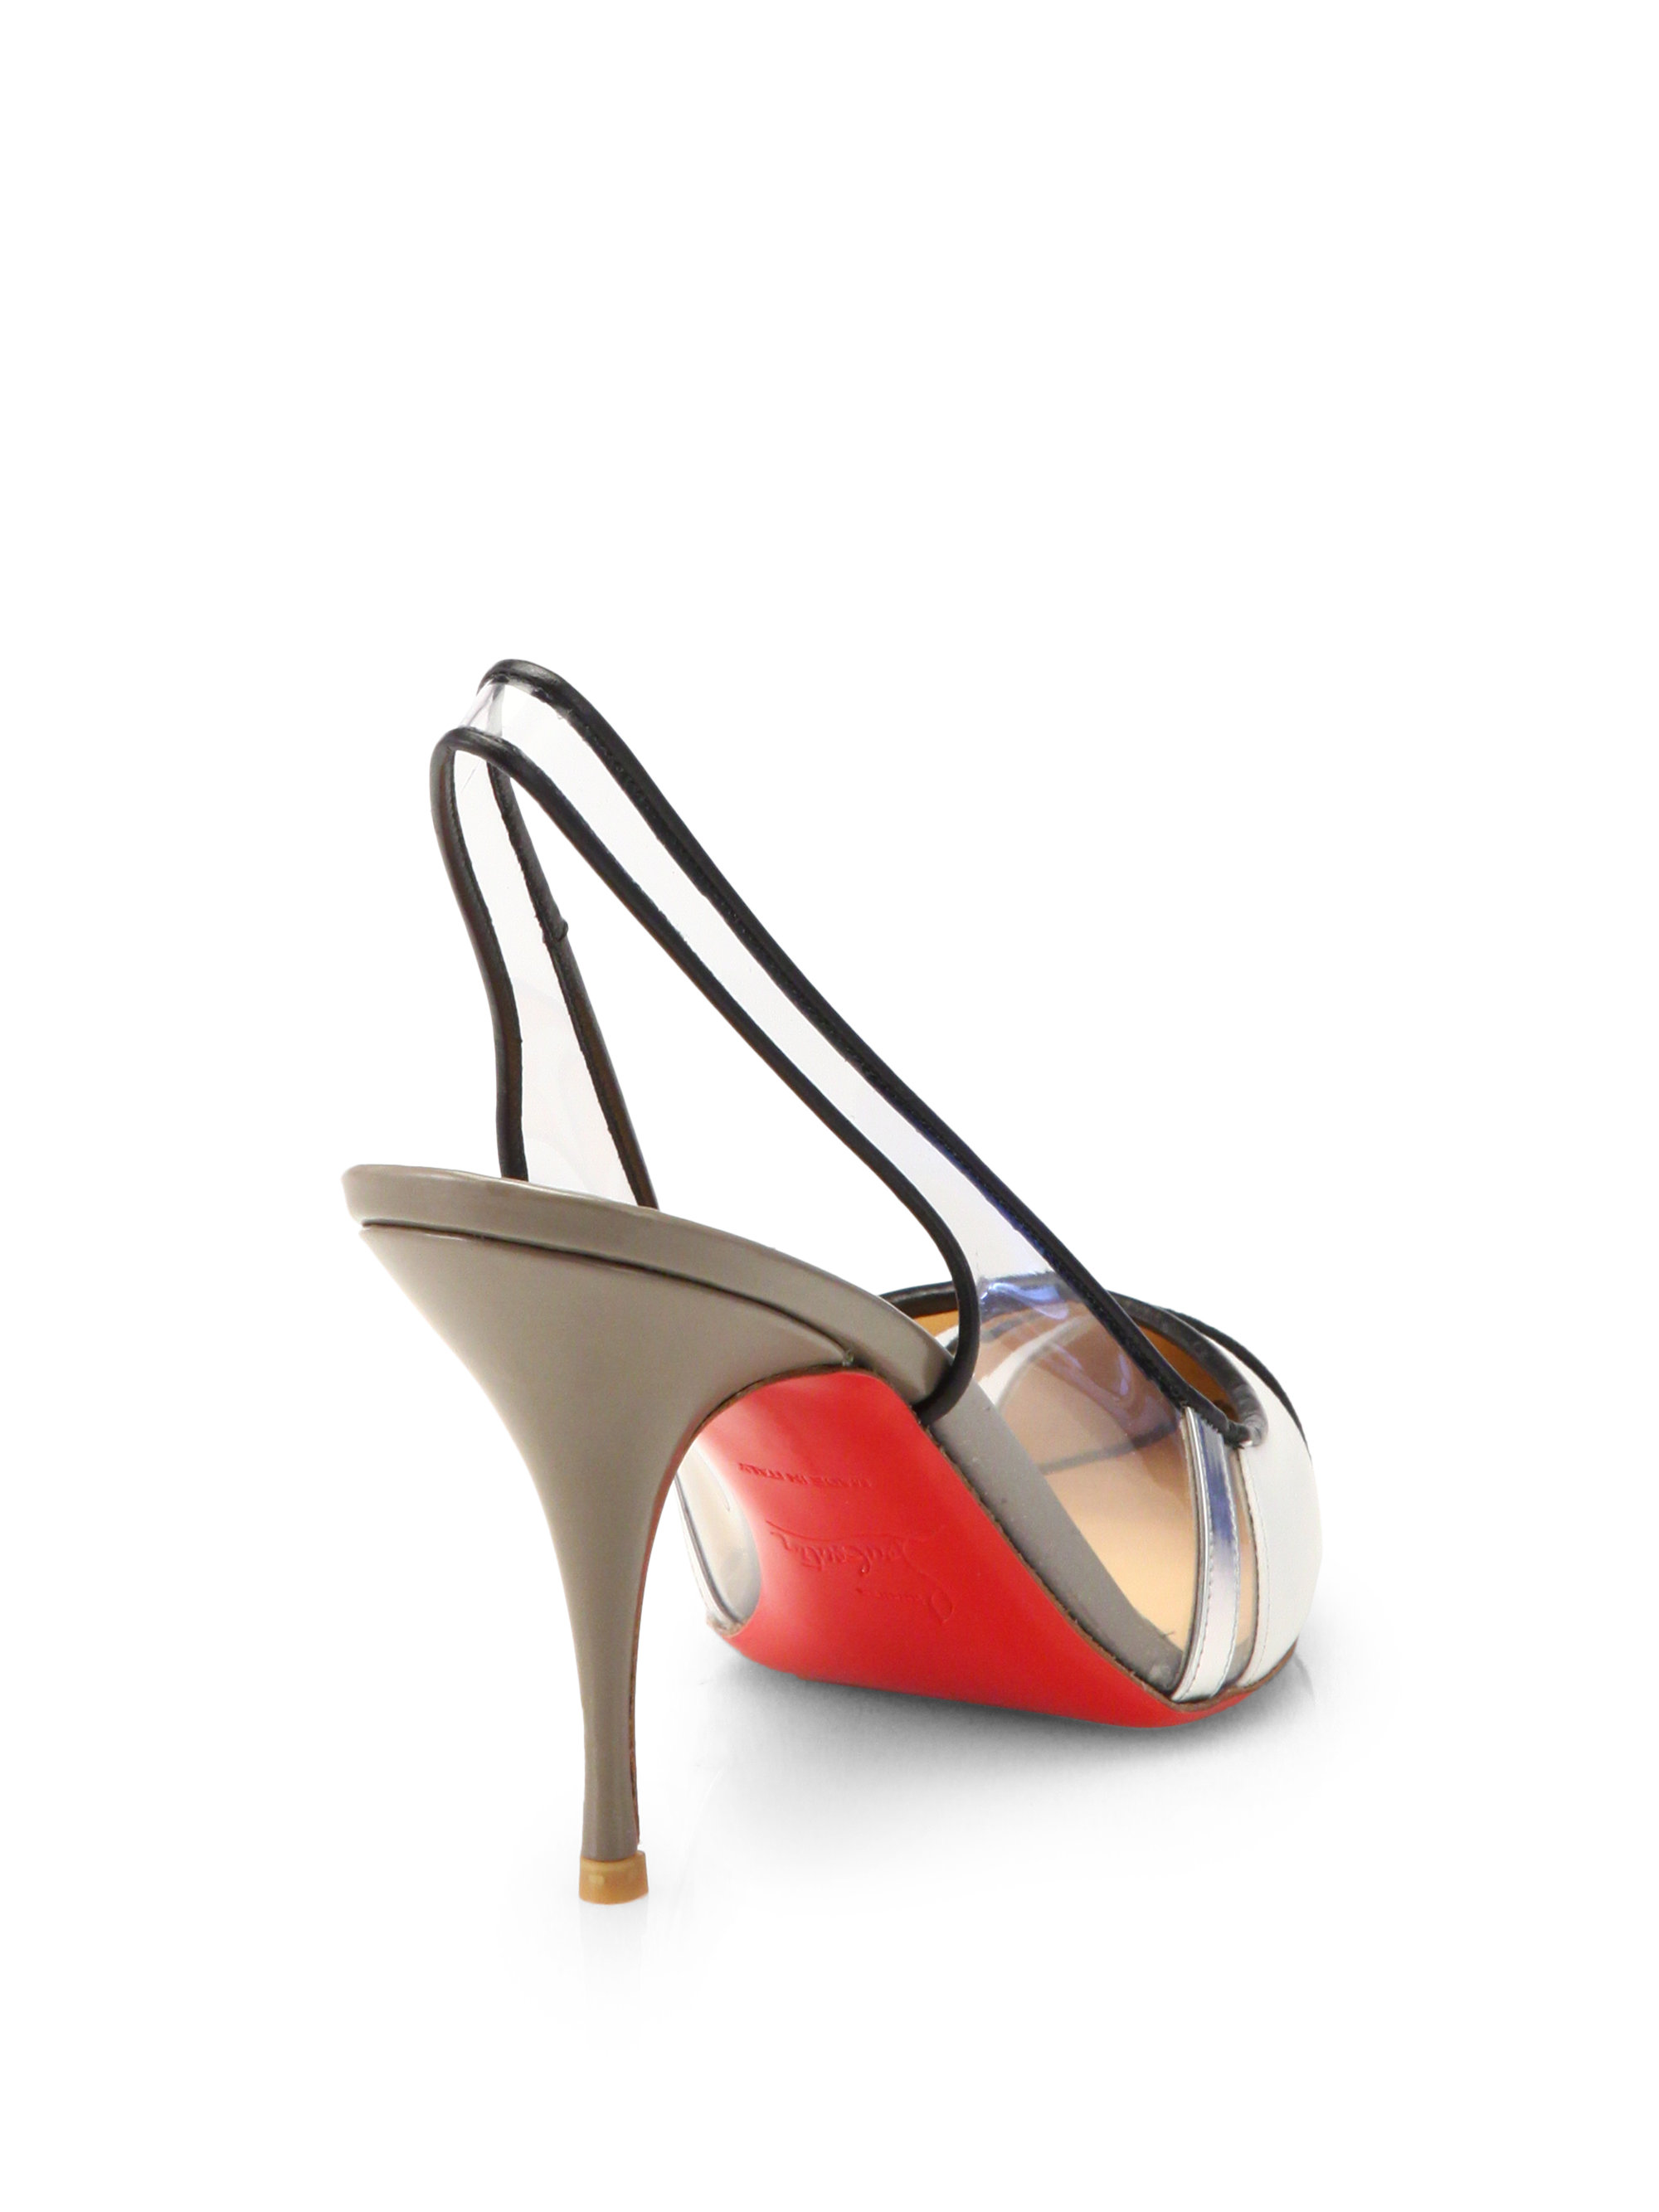 dd112d03a1a1 Lyst - Christian Louboutin Highway Transparent Slingback Pumps in ...